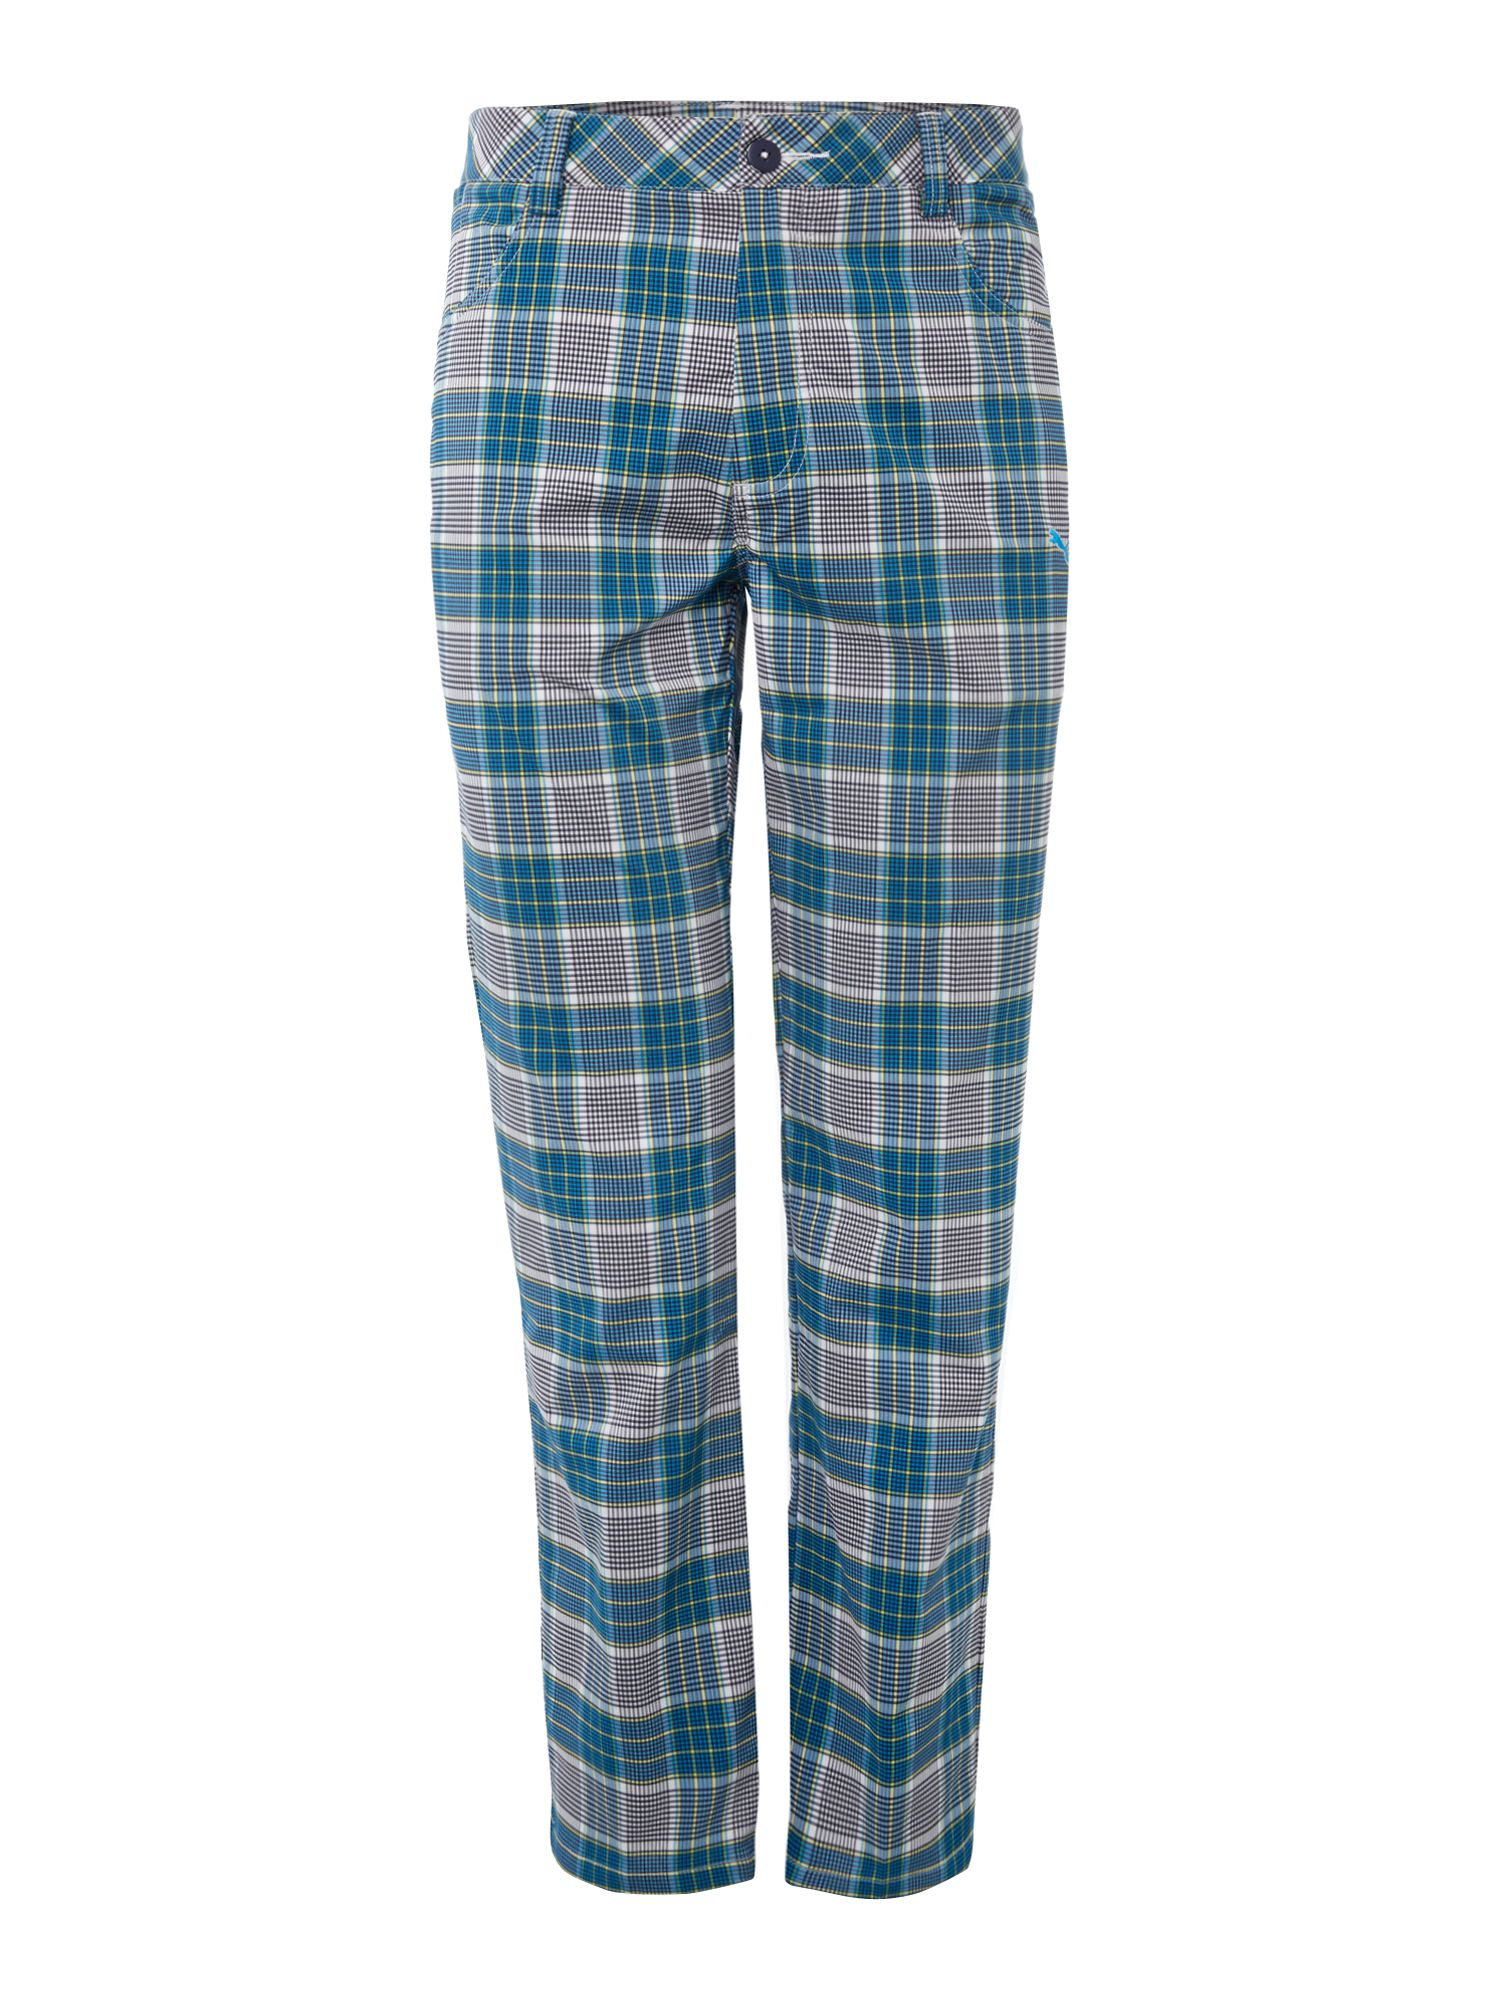 Plaid tech 5 pocket pant